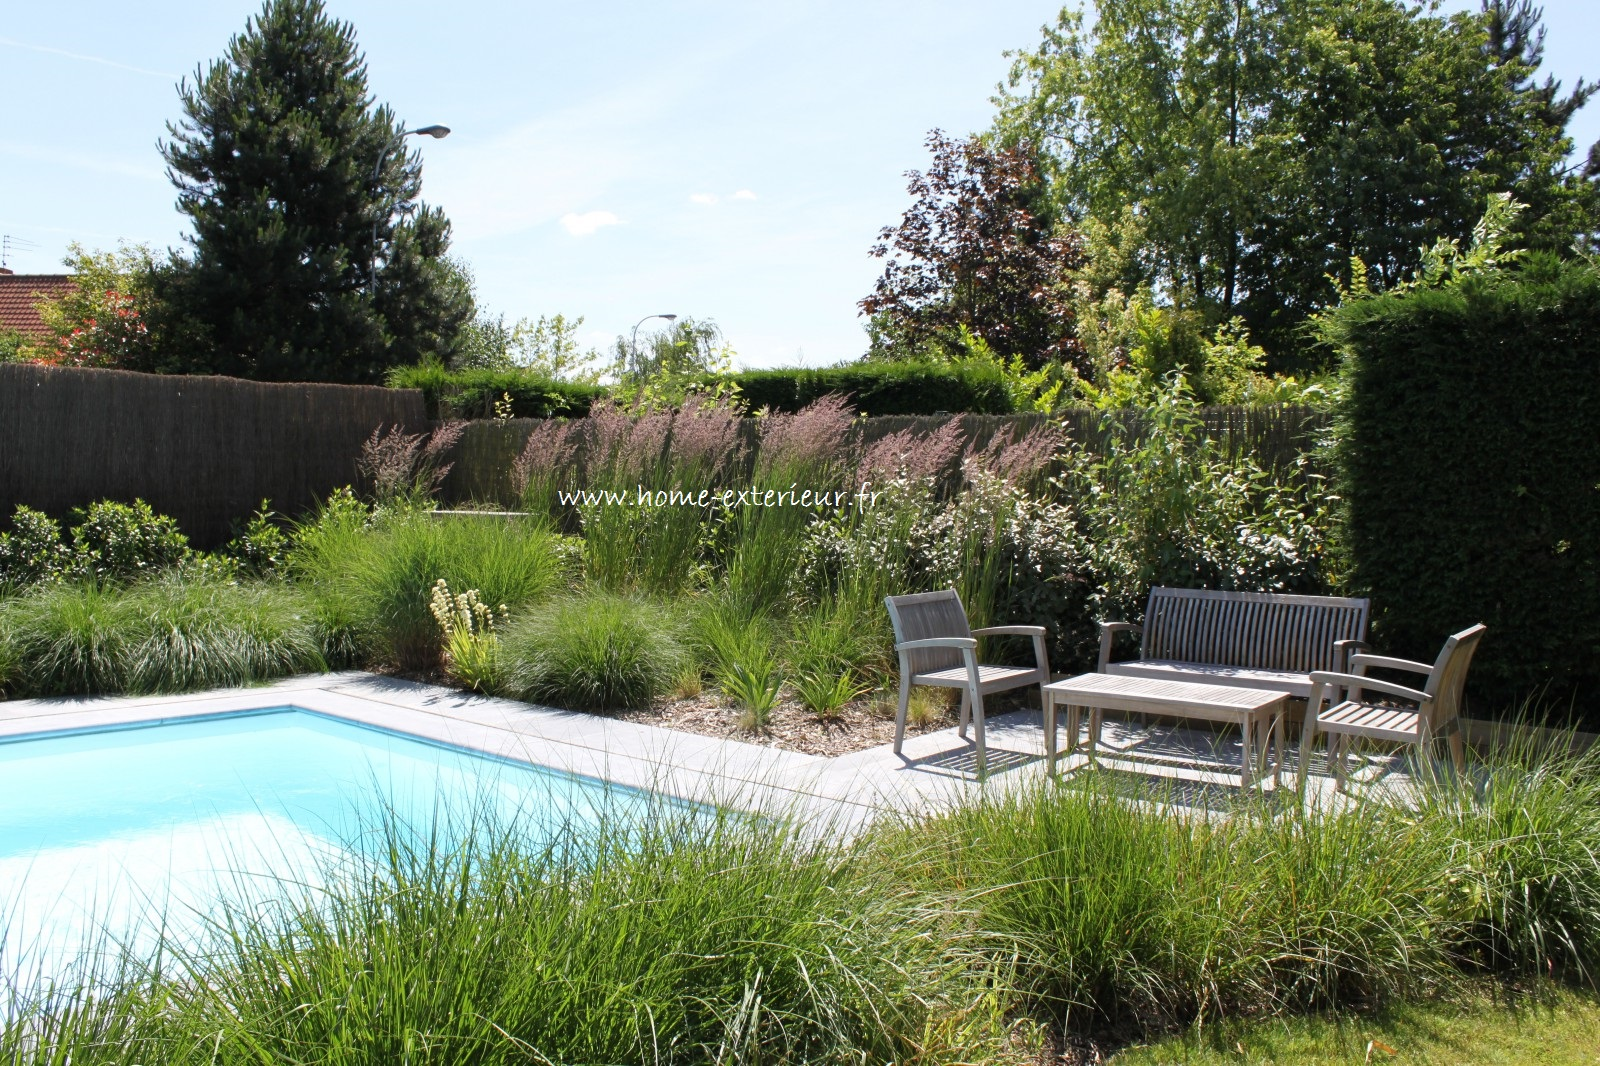 Am nagement abords de piscines et spas home ext rieur for Home piscine